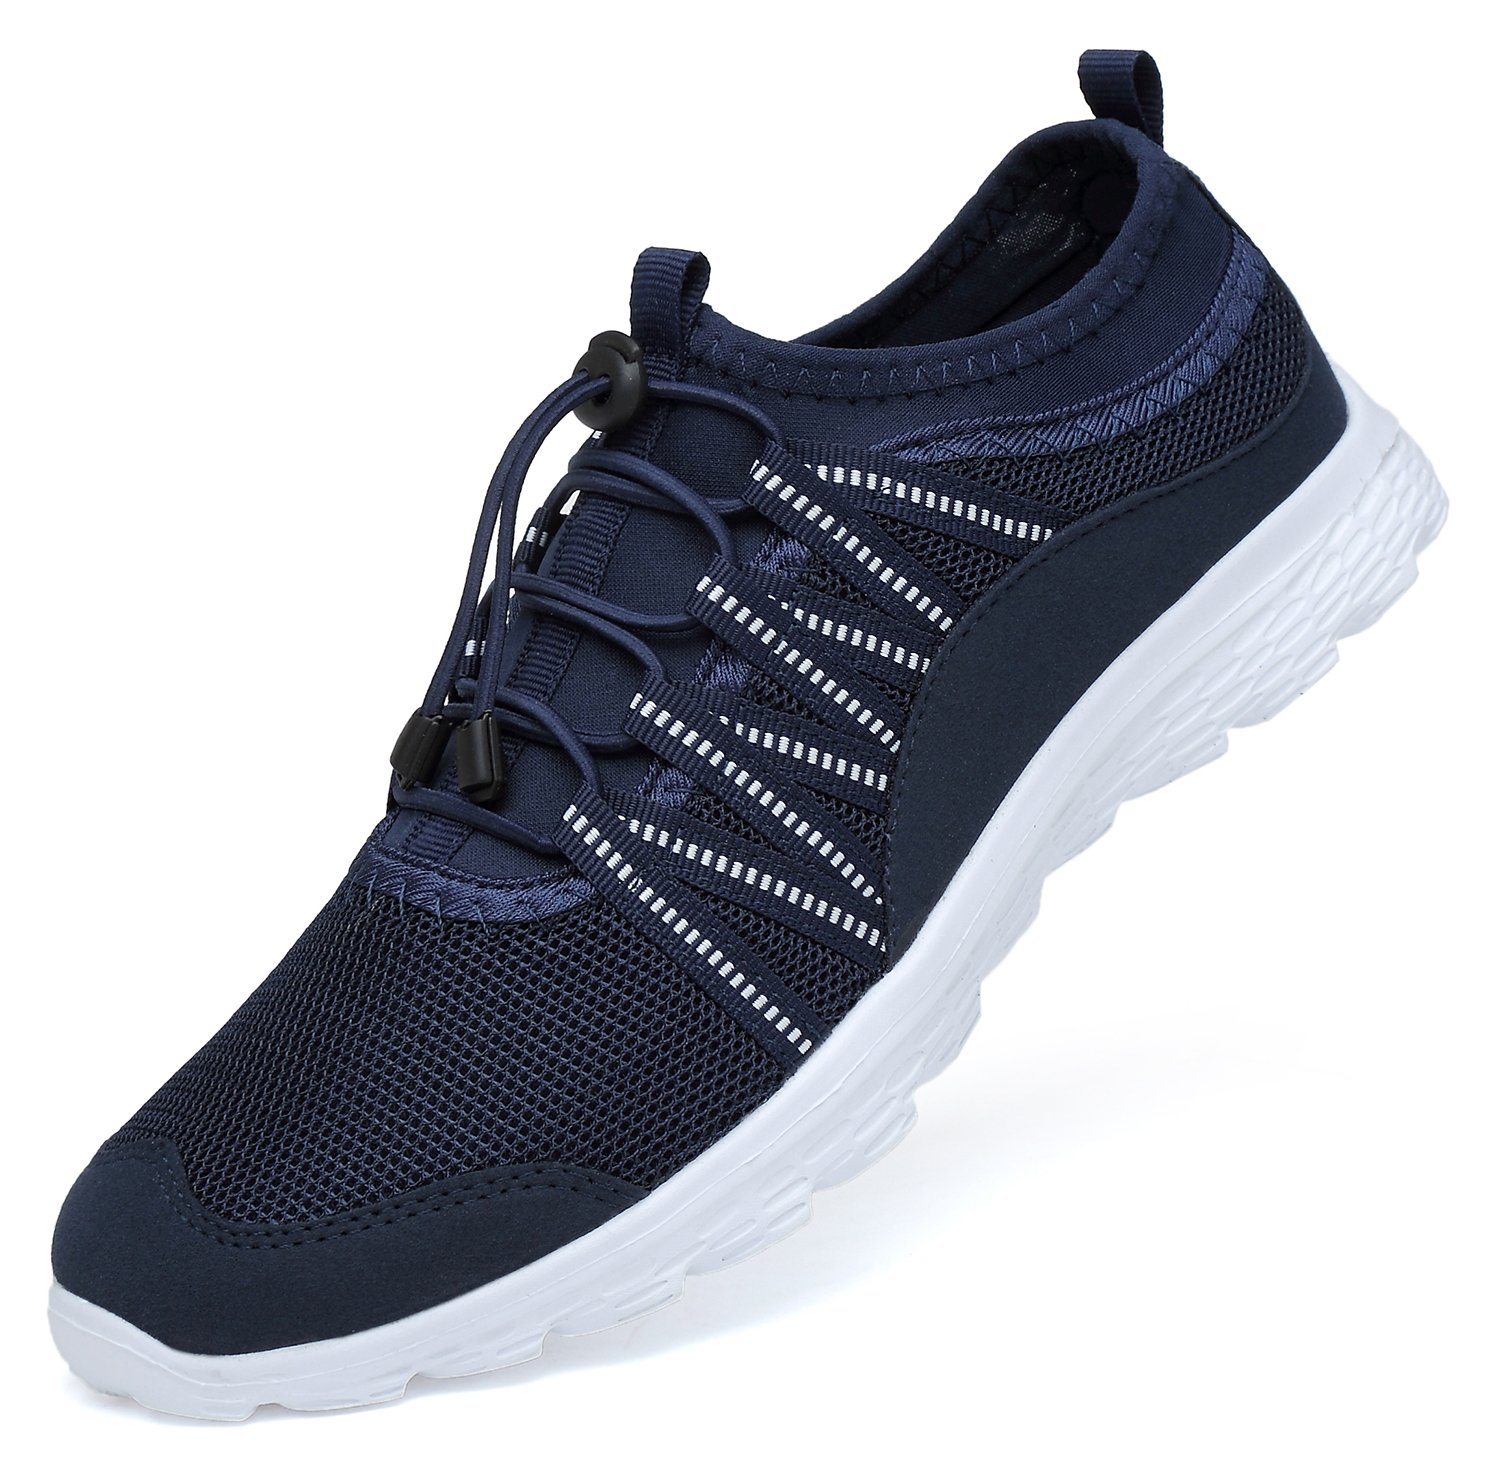 Men's Lightweight Walking Shoes Breathable Mesh Soft Sole for Casual Walk Outdoor Workout Travel Work by BELILENT